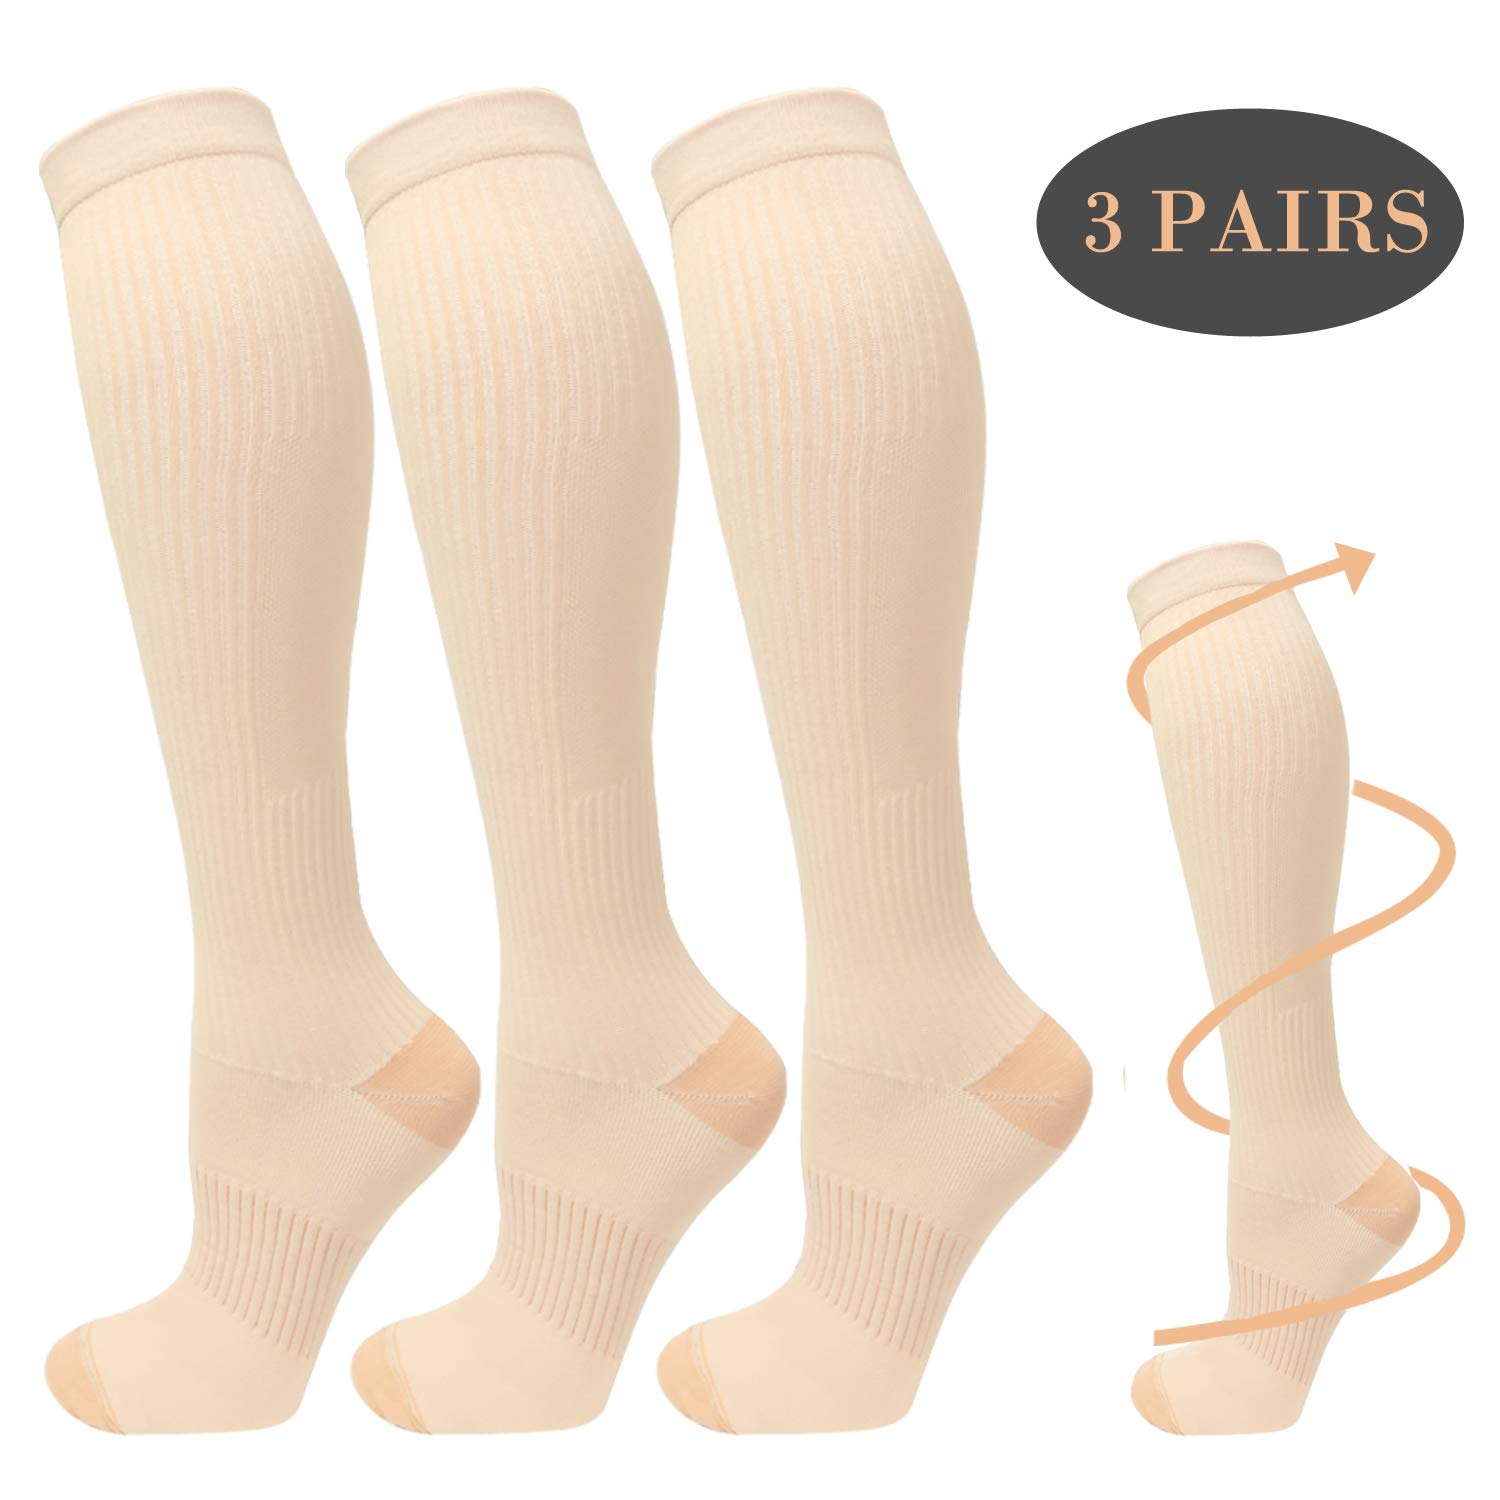 Copper Compression Socks For Men&Women -3 Pairs - Best Recovery Support Socks For Running,Athletic,Medical,Pregnancy and Travel -15-20mmHg (Nude, L/XL)